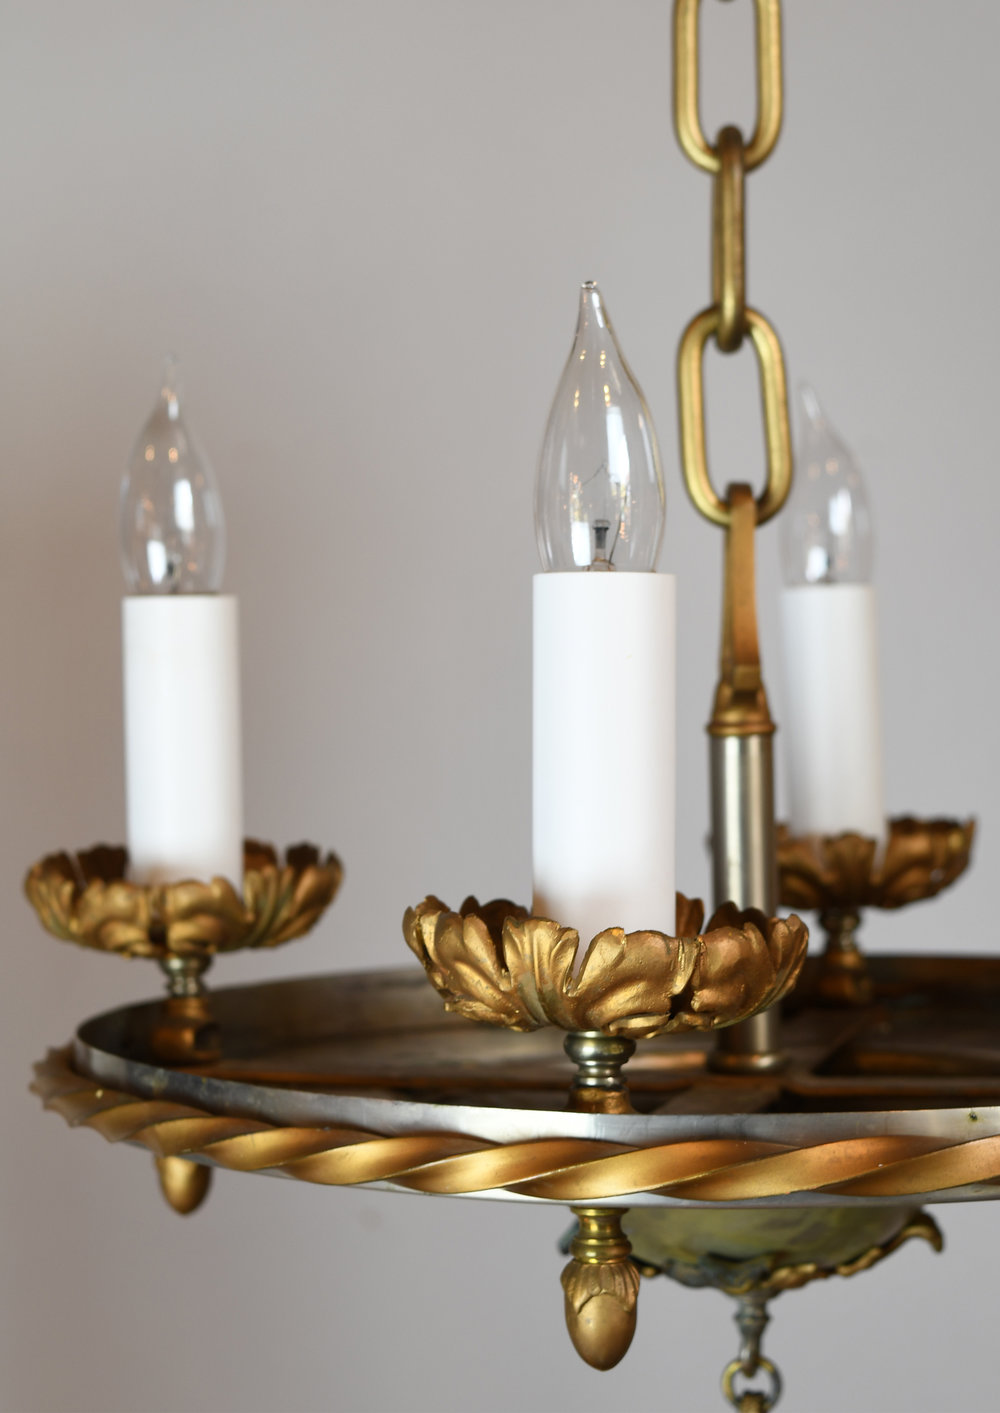 47420-4-candle-brass-gothic-chand-detail-good-7.jpg